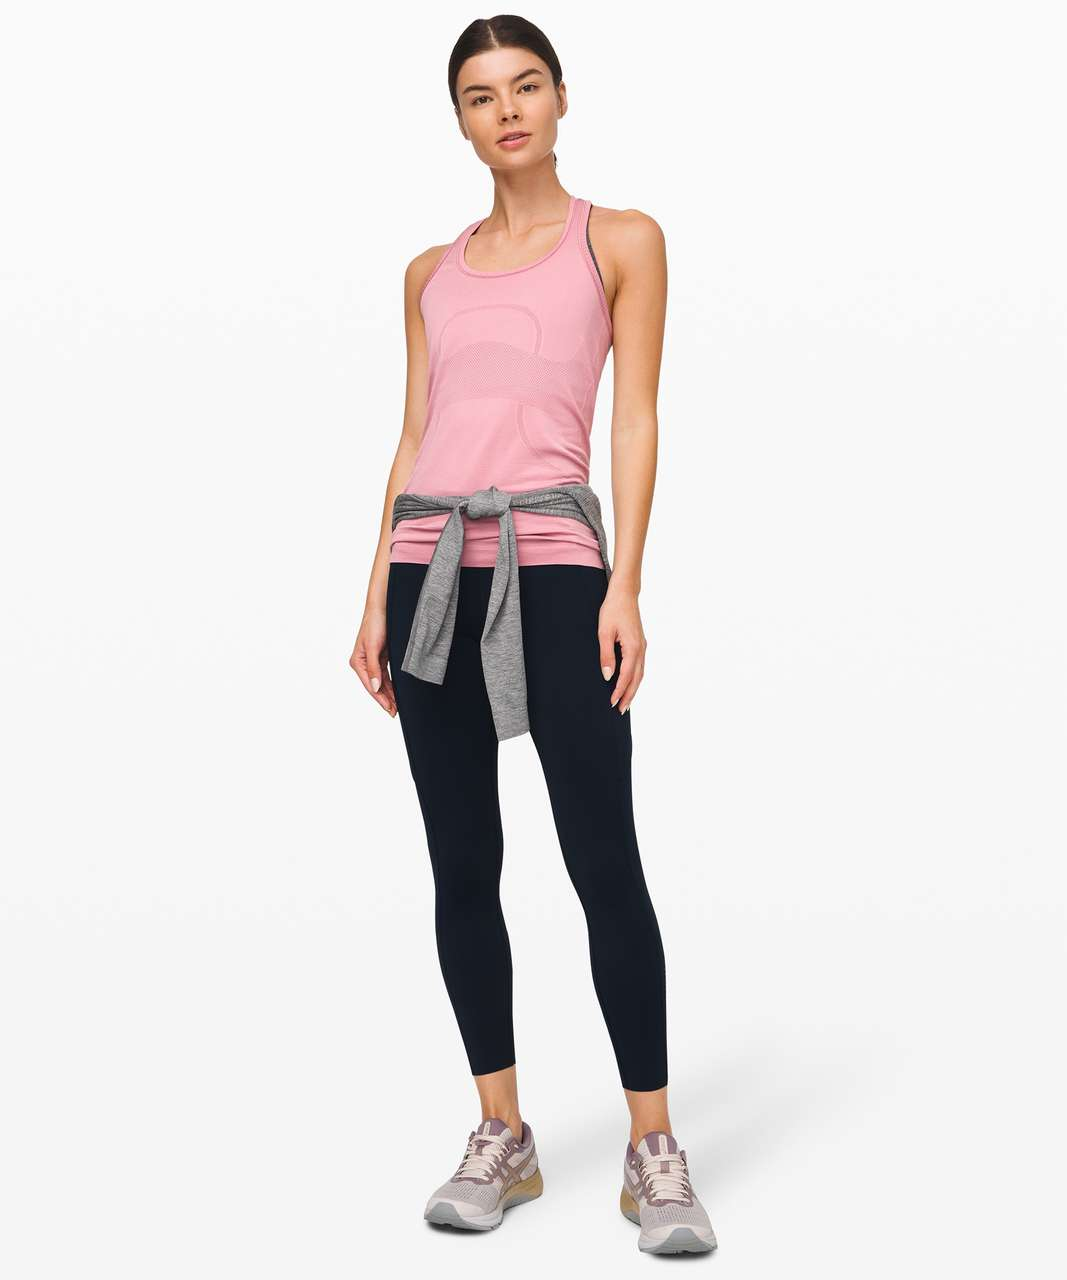 Lululemon Swiftly Tech Racerback - Pink Taupe / Pink Taupe